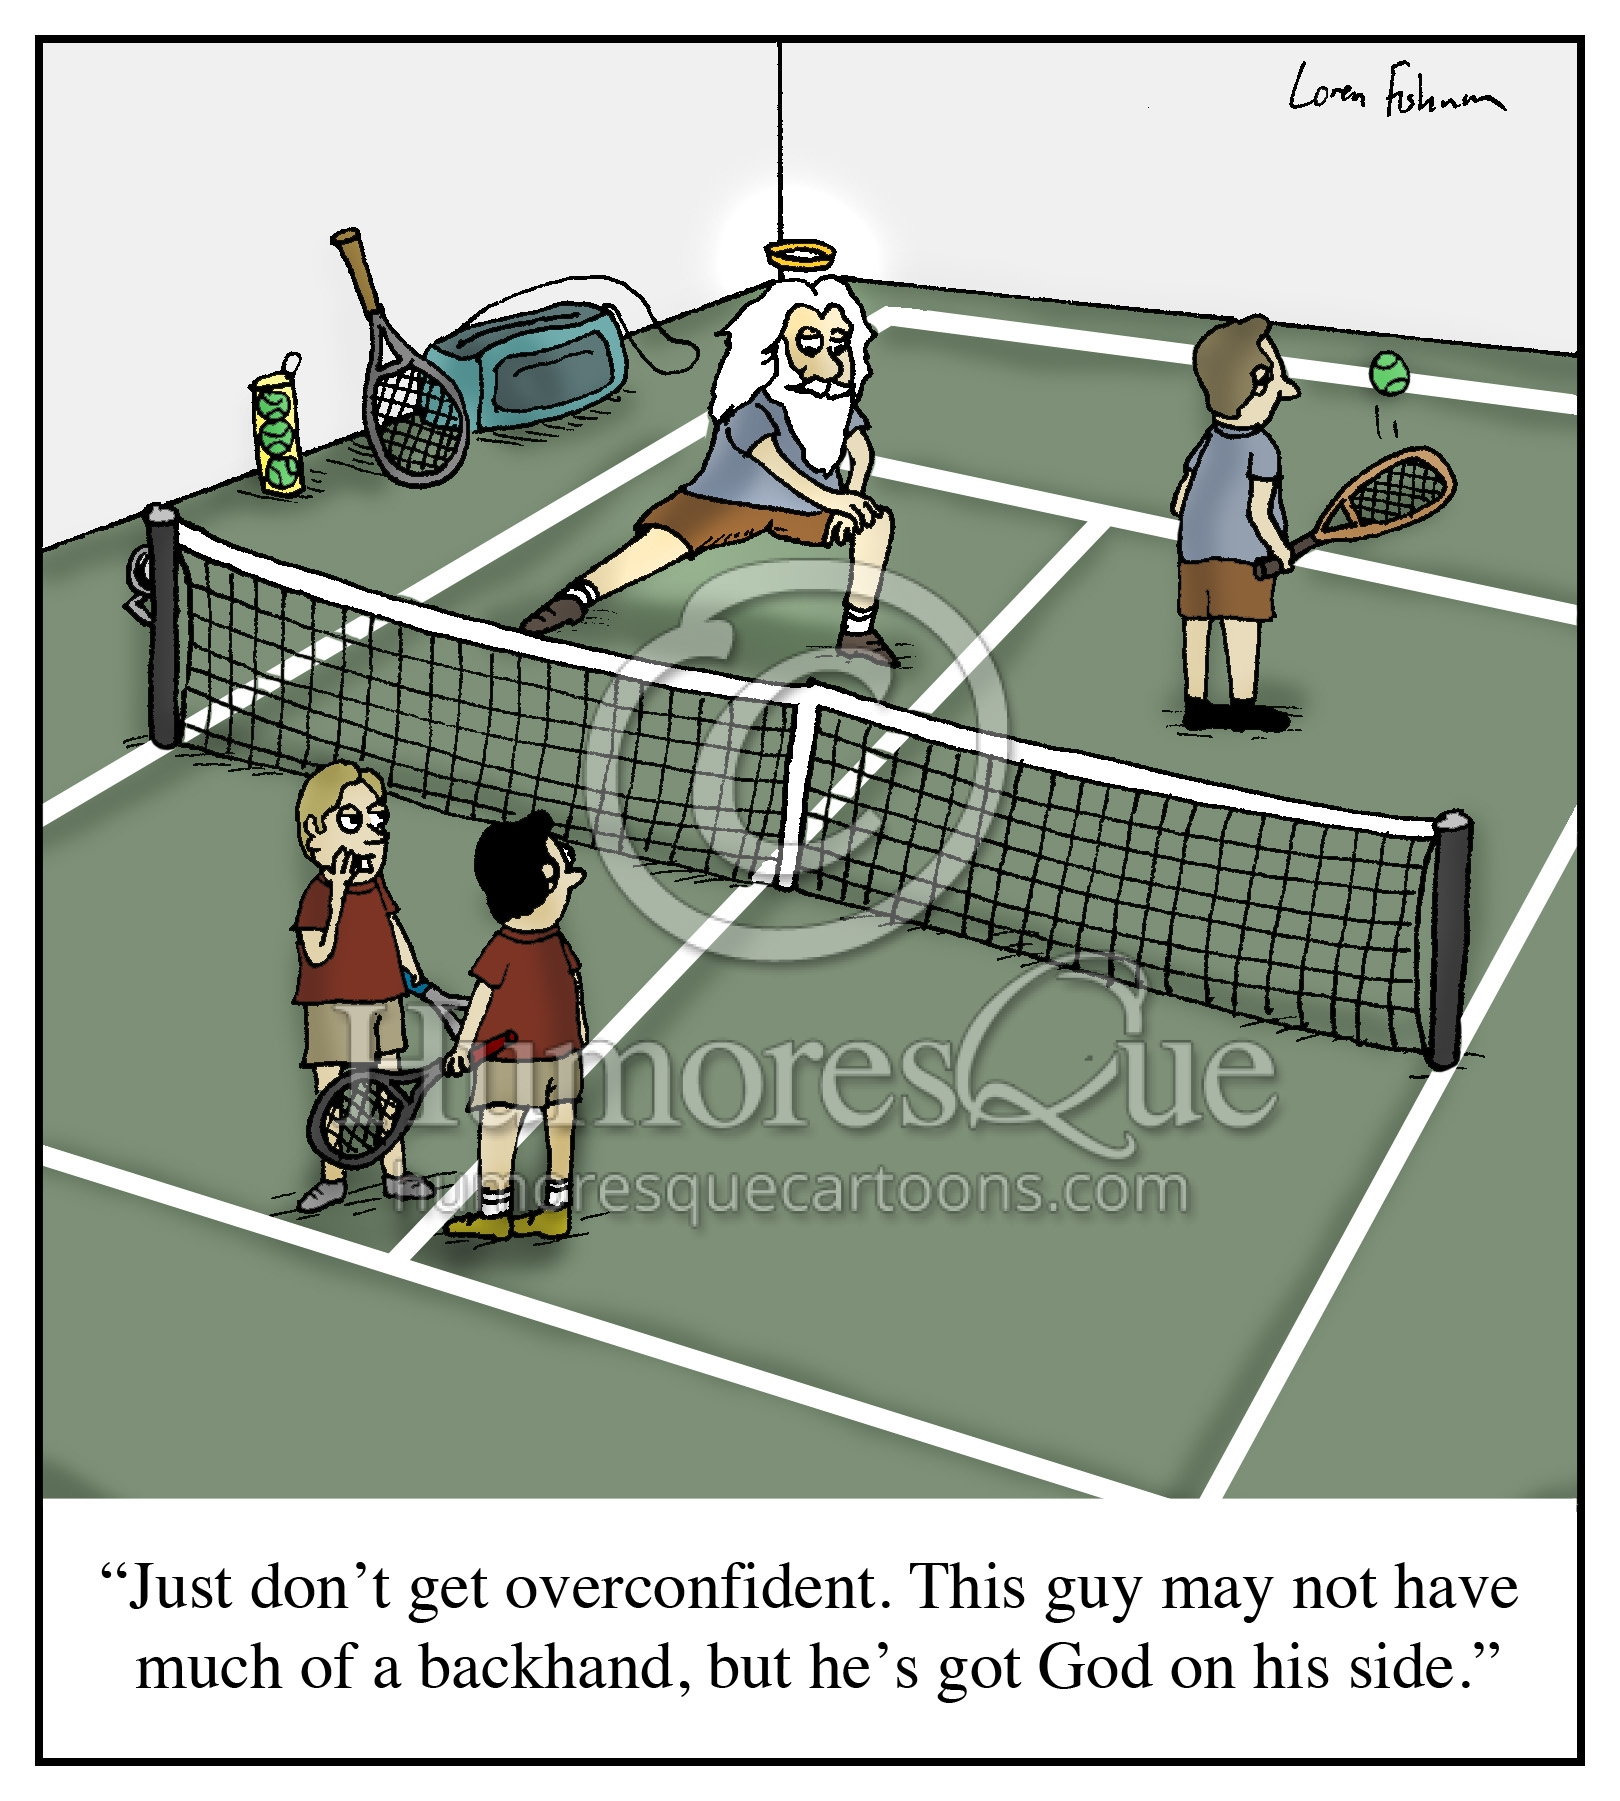 tennis player with god on his side tennis cartoon